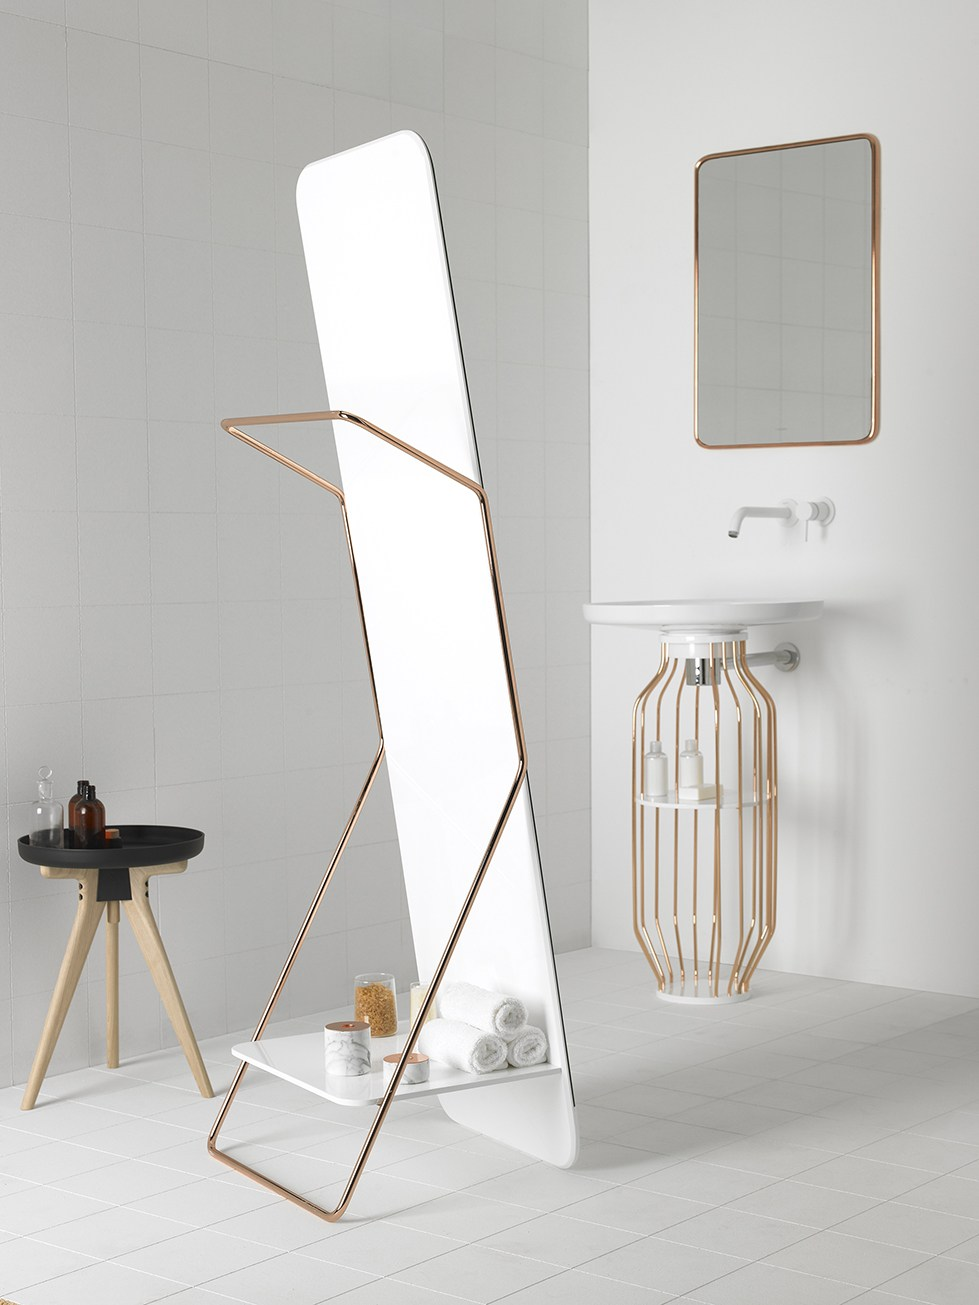 Freestanding Bathroom Mirror Bowl Collection By Inbani